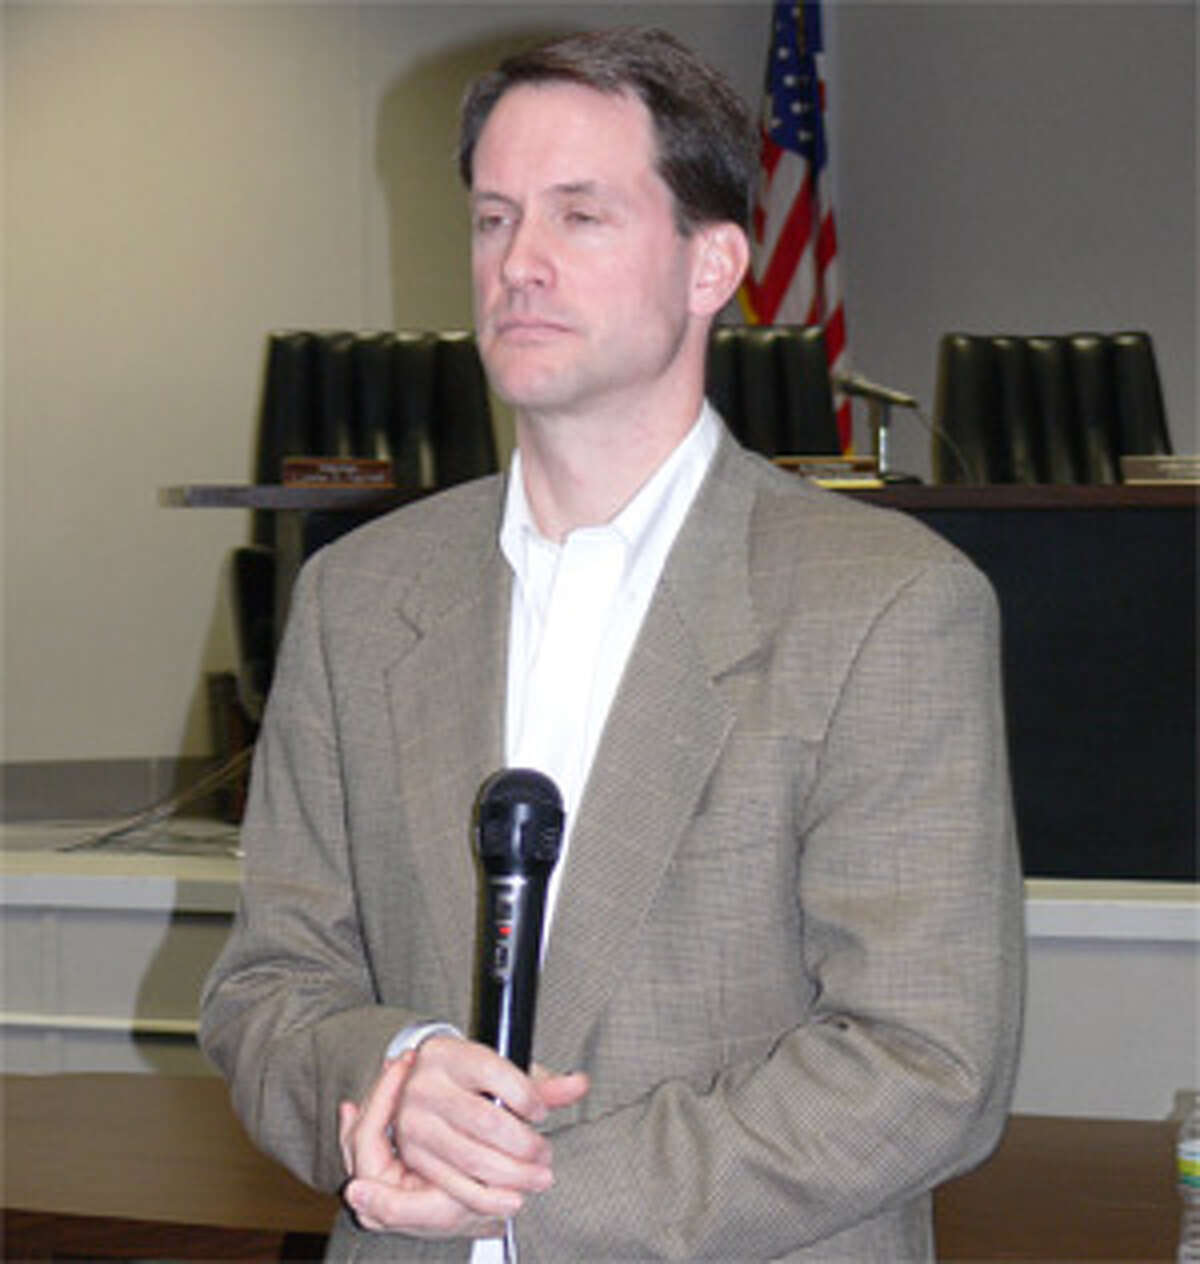 Congressman Jim Himes listens to a constituent speak at the town meeting in Shelton.